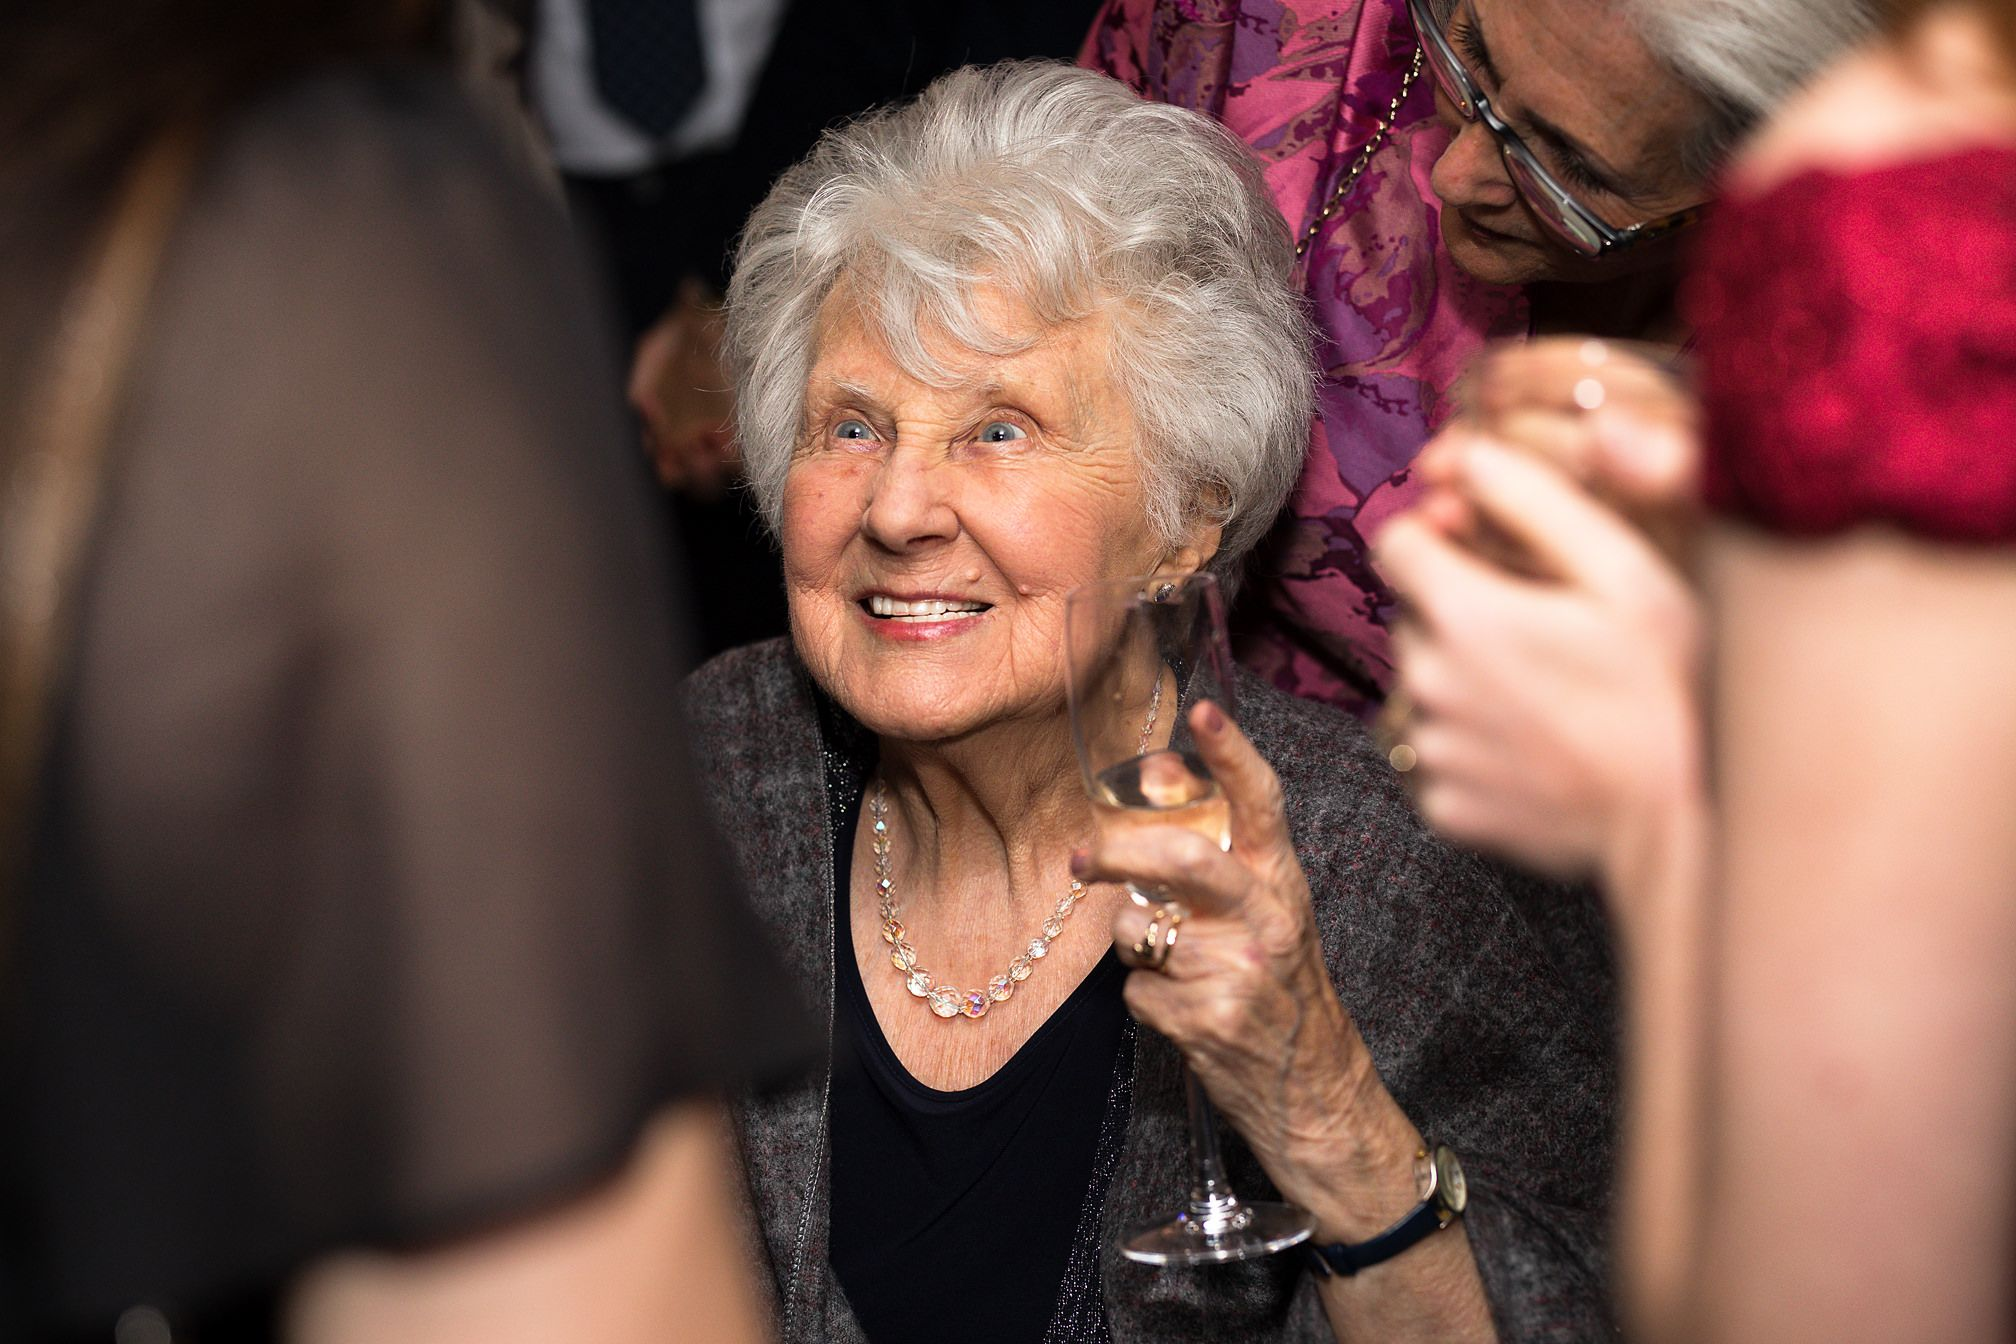 Grandmother of the bride smiles during indoor wedding celebrations amongst female guests